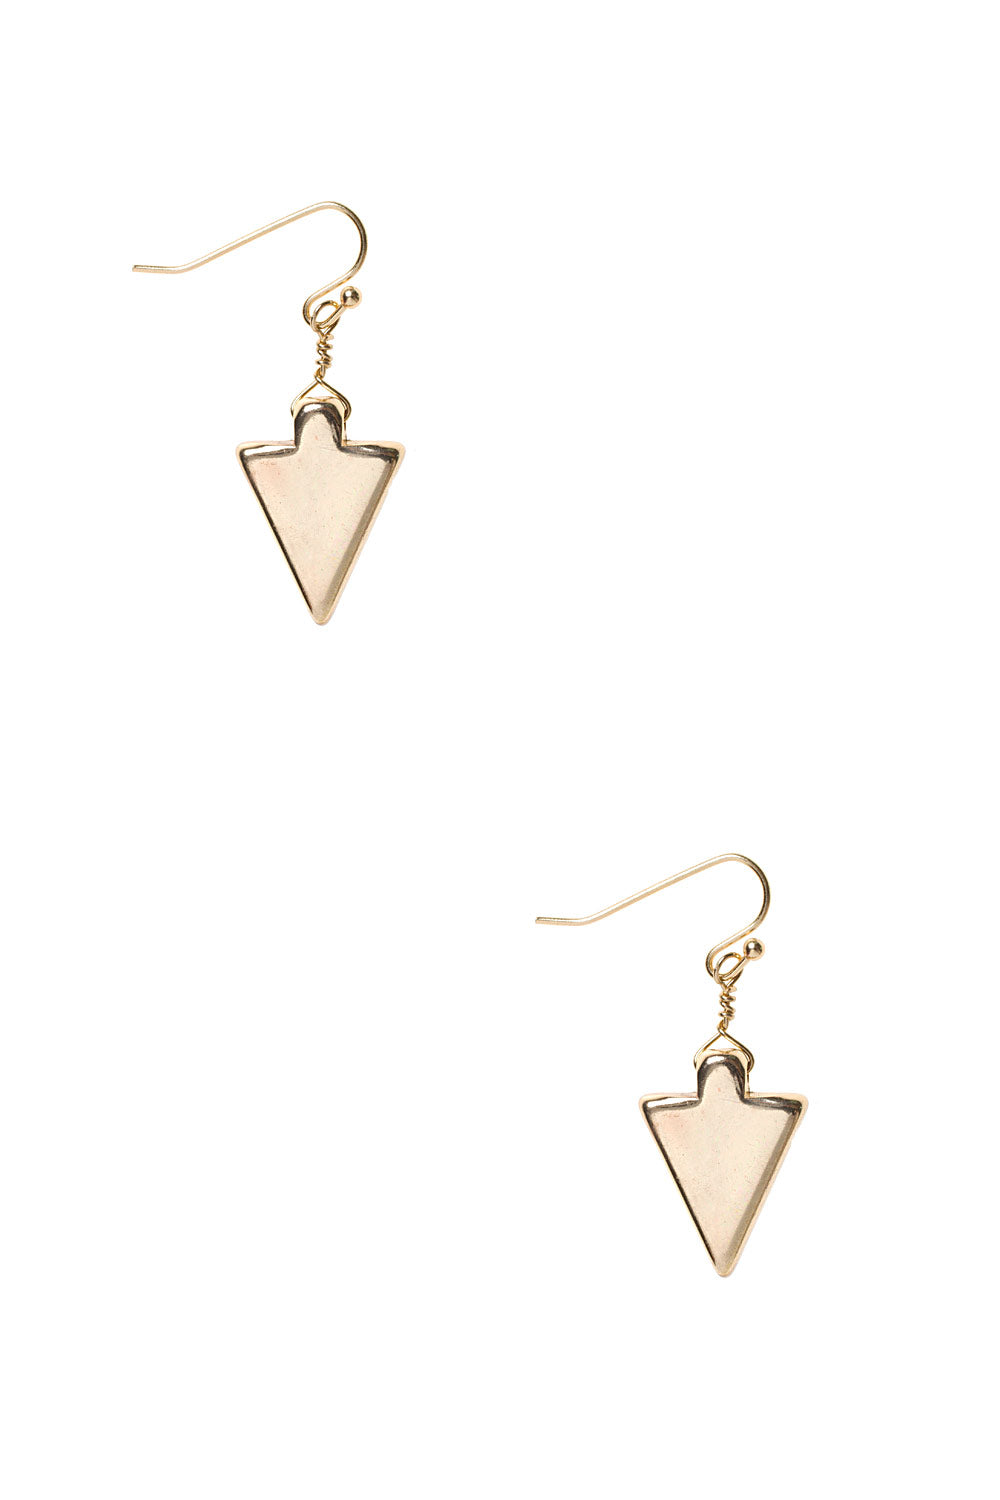 Type 3 Arrowhead Earrings